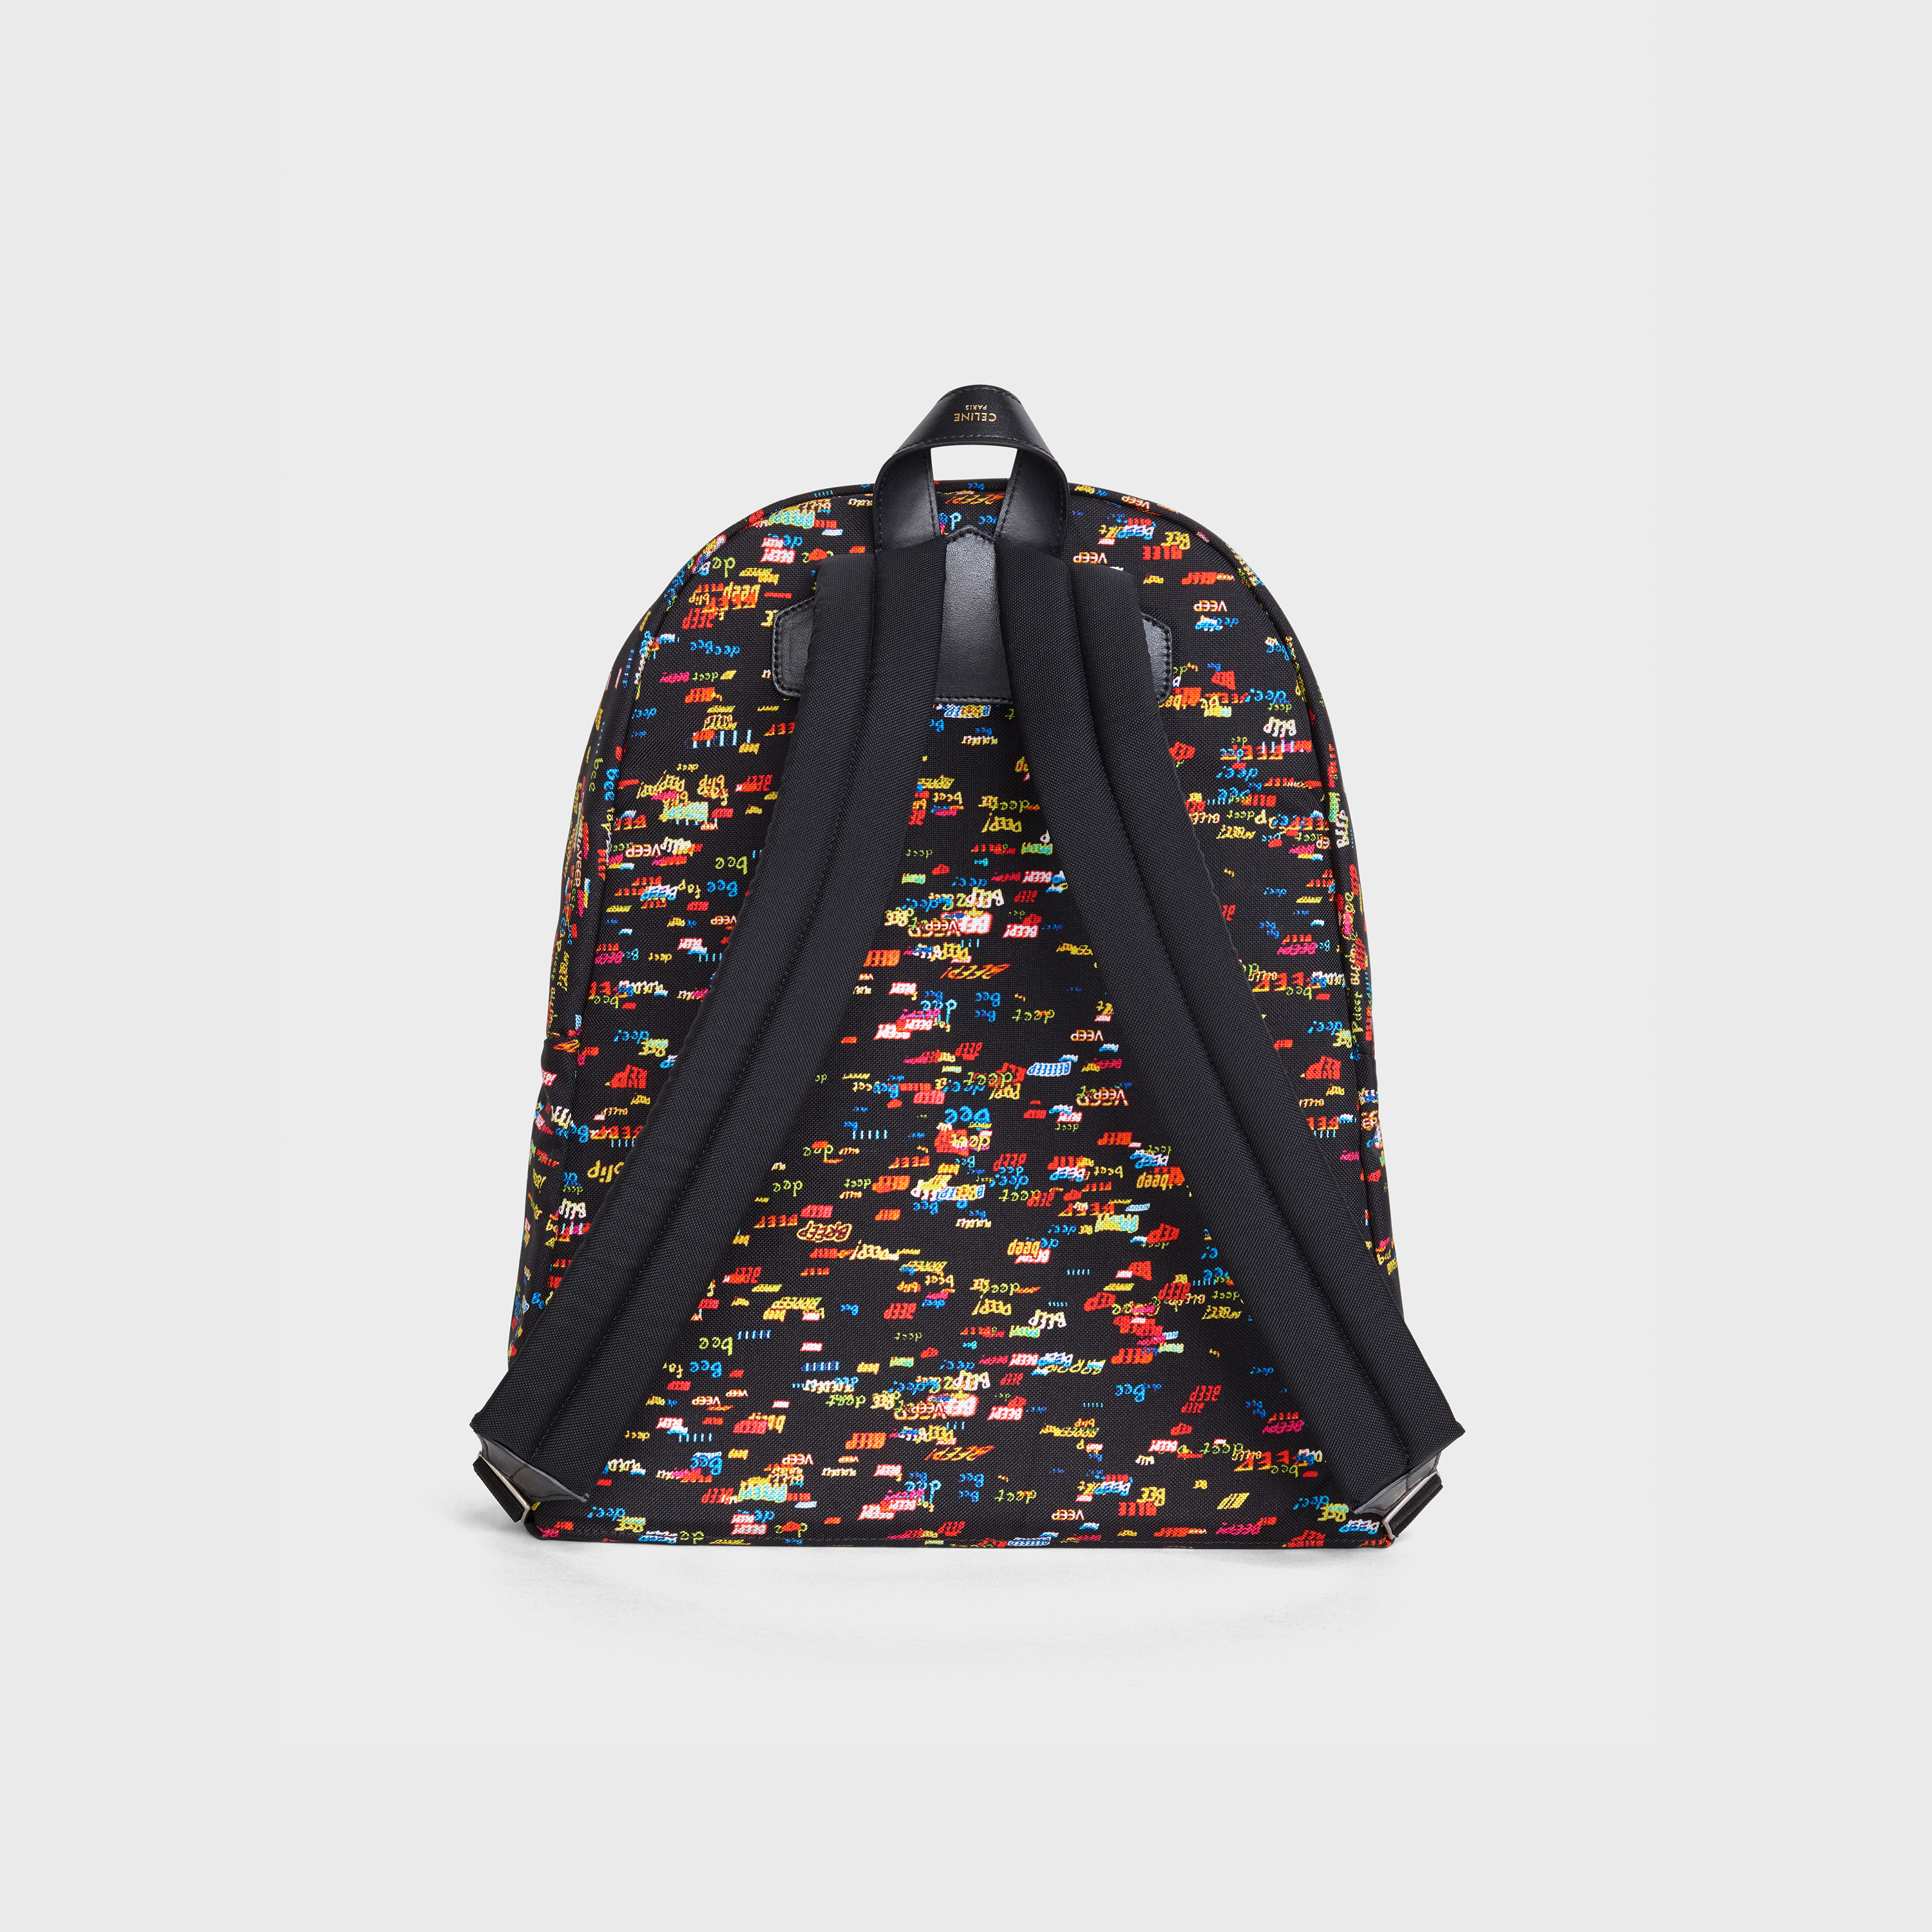 MEN - Medium Backpack in nylon printed CHRISTIAN MARCLAY 'BEEP' | CELINE